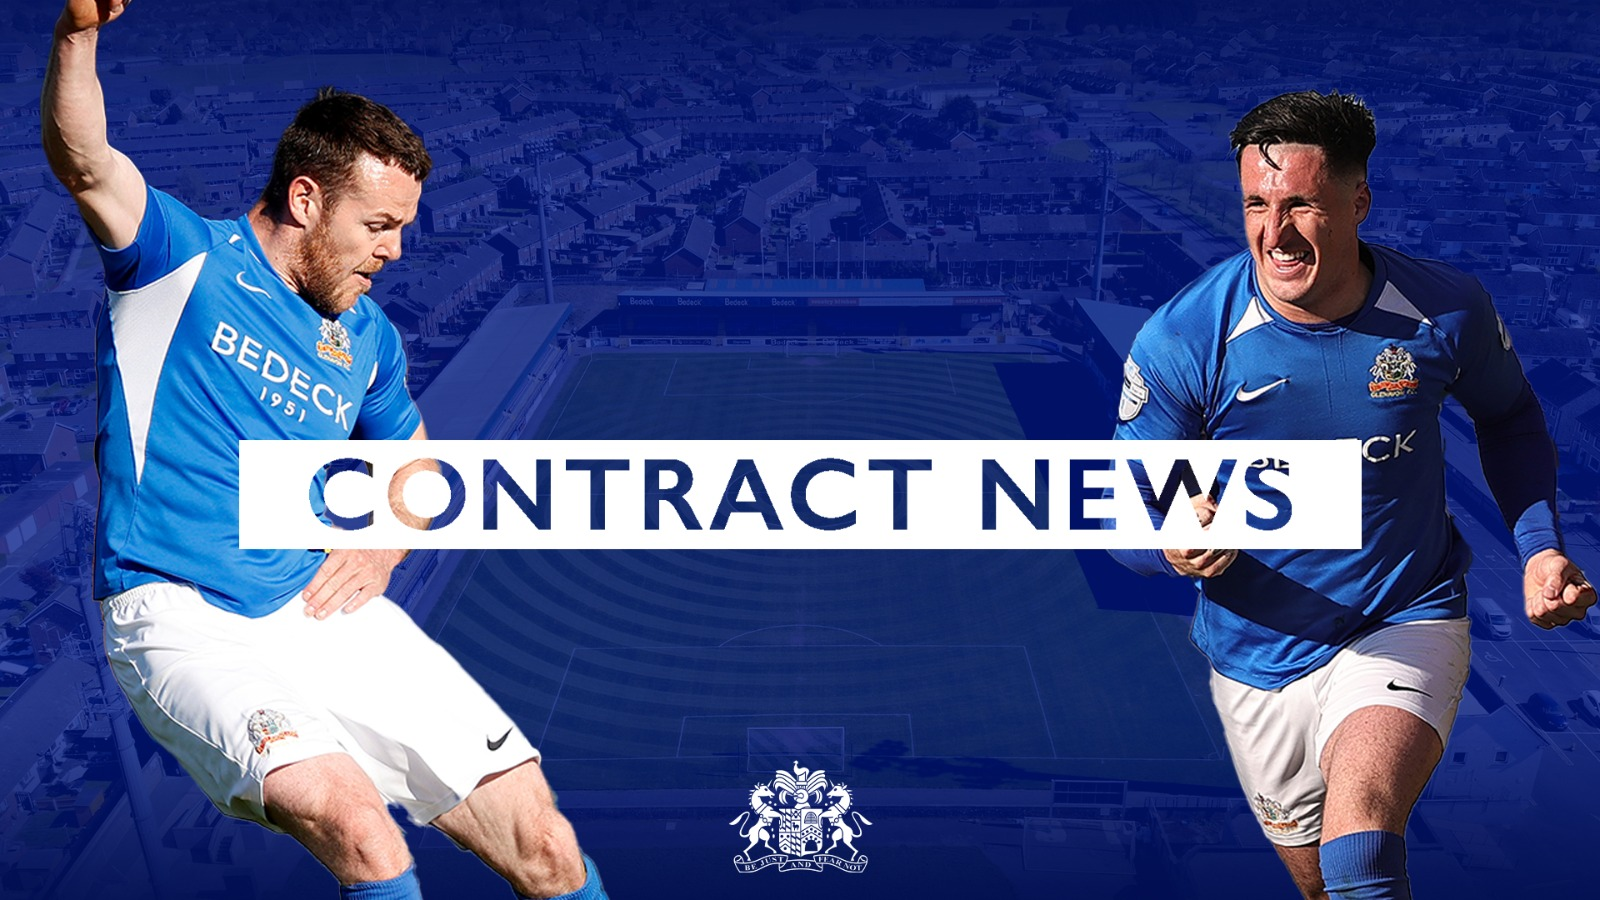 Purkis and Harmon sign contract extensions